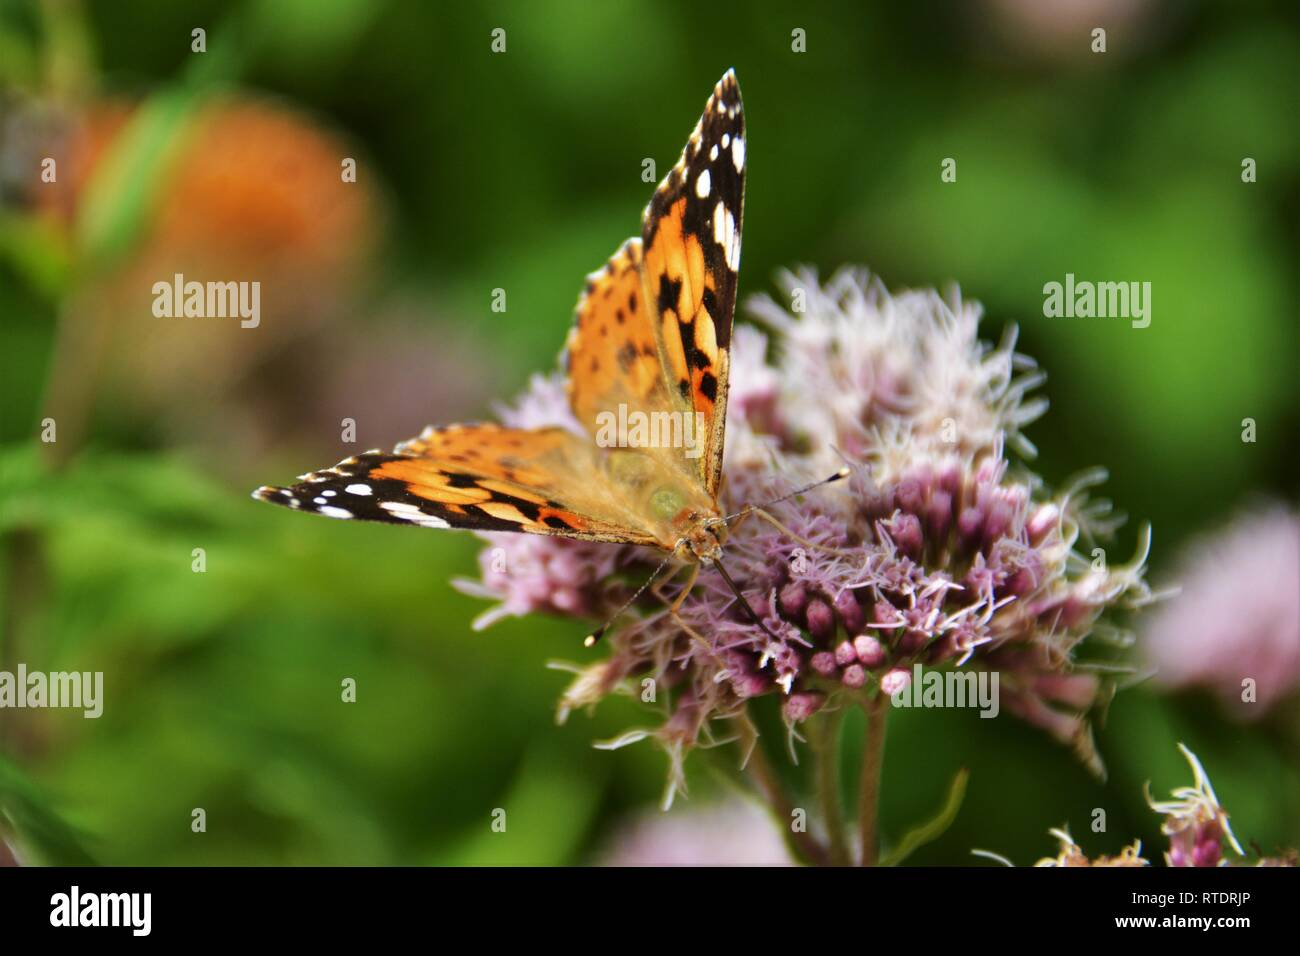 Painted Lady butterfly (Vanessa cardui) sipping nectar from a pink flower in Amalfi, Italy. - Stock Image